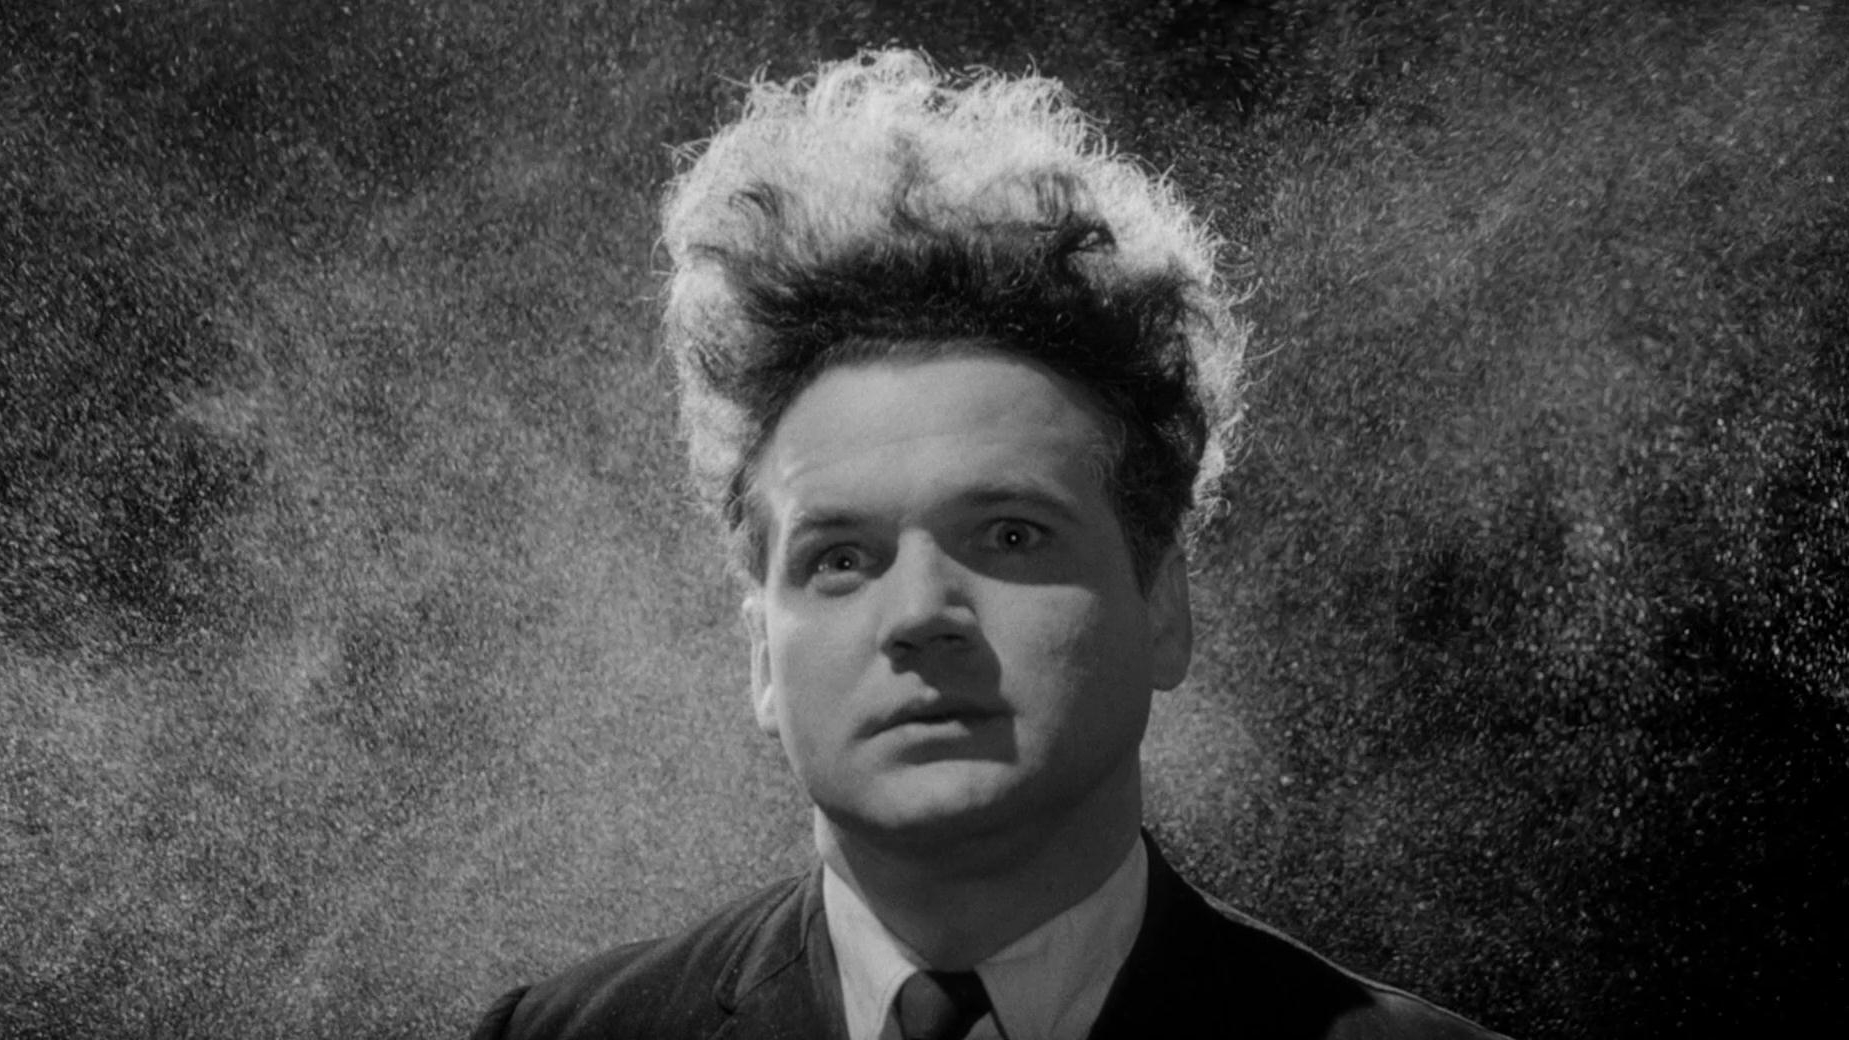 eraserhead-1977-wallpaper.jpg